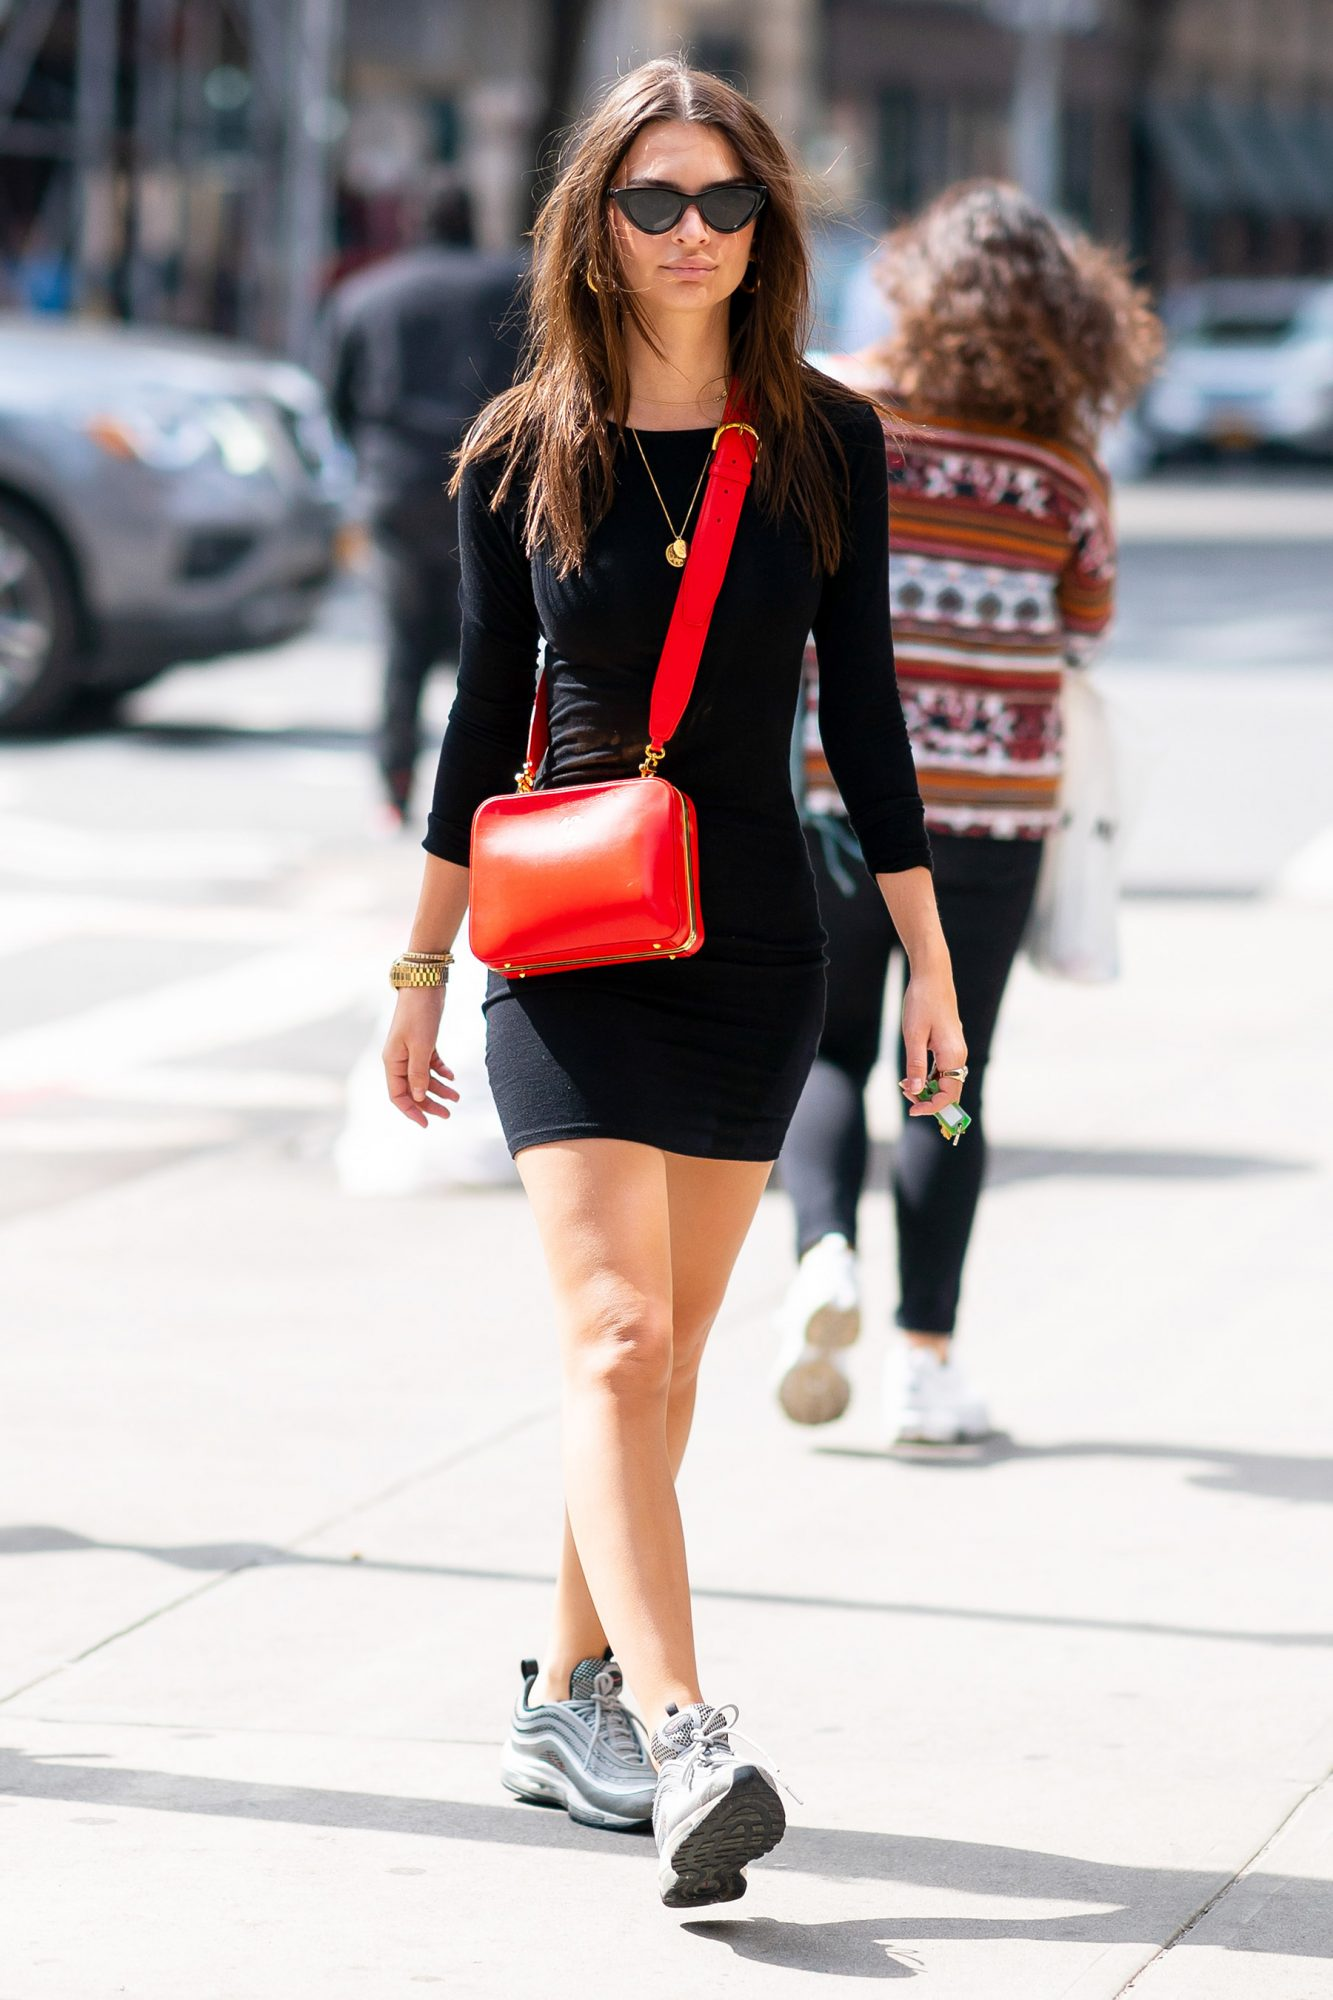 EXCLUSIVE: Emily Ratajkowski wears a little black dress with a Mark Cross handbag while out for a stroll in New York City